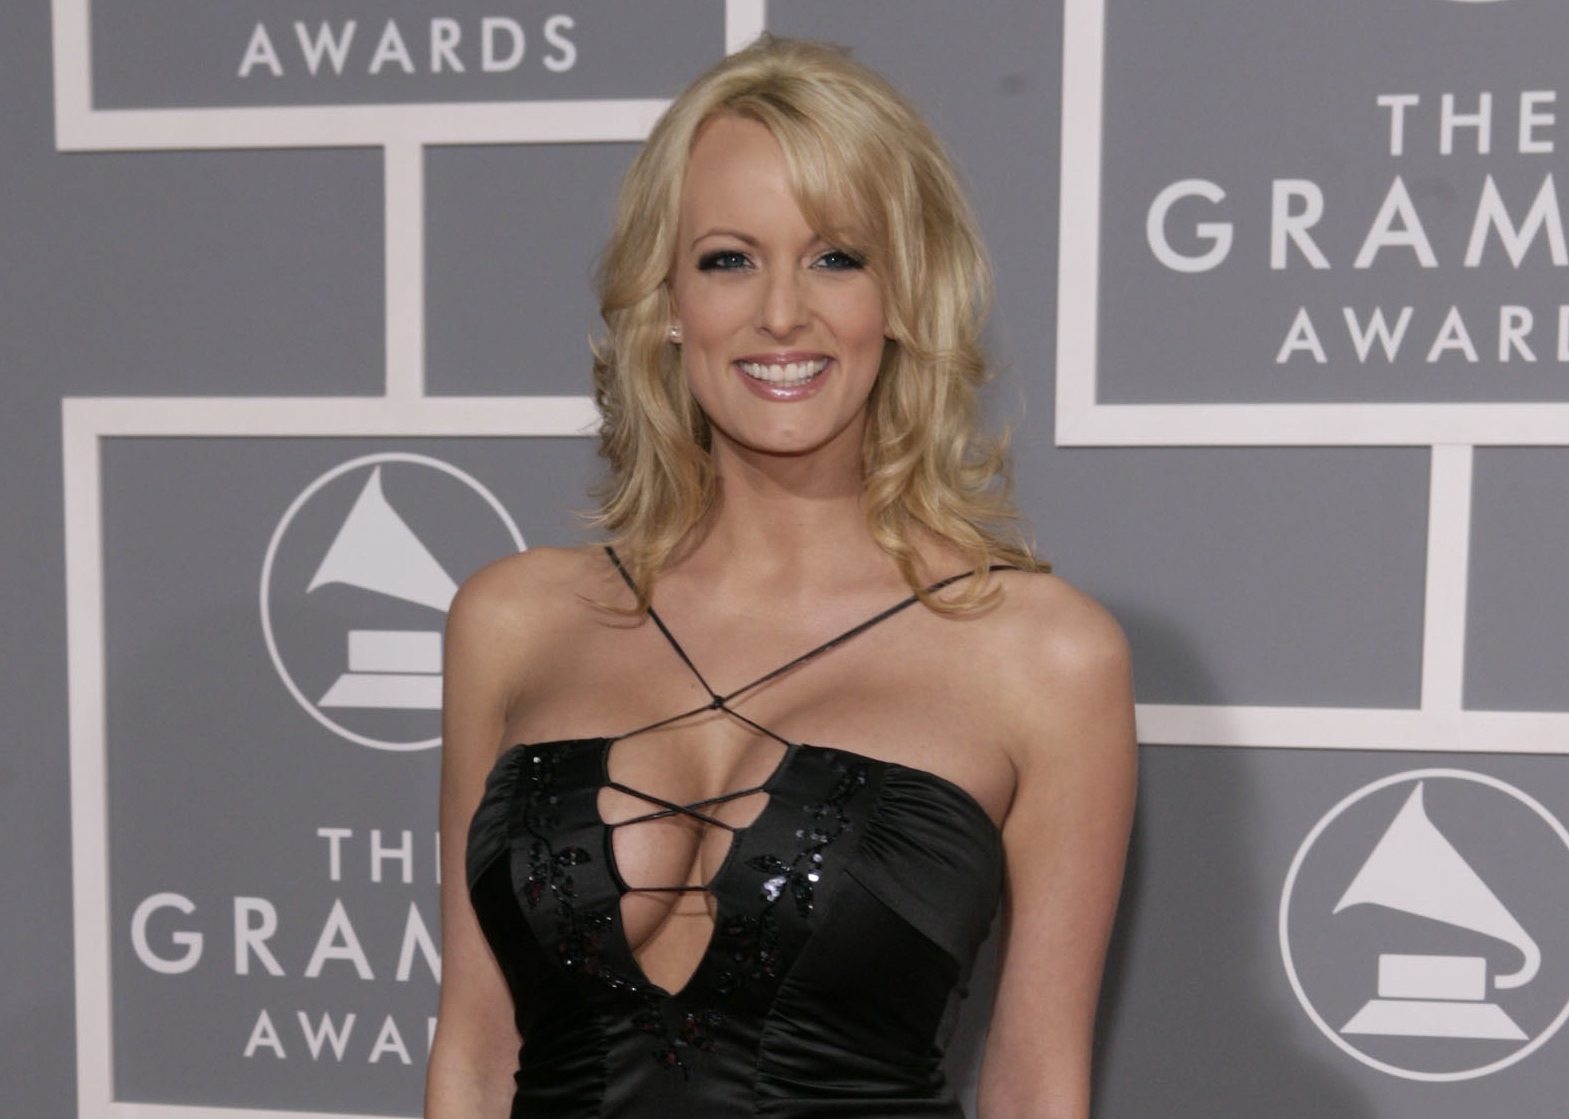 Affair Porn statement from porn star stormy daniels says affair with